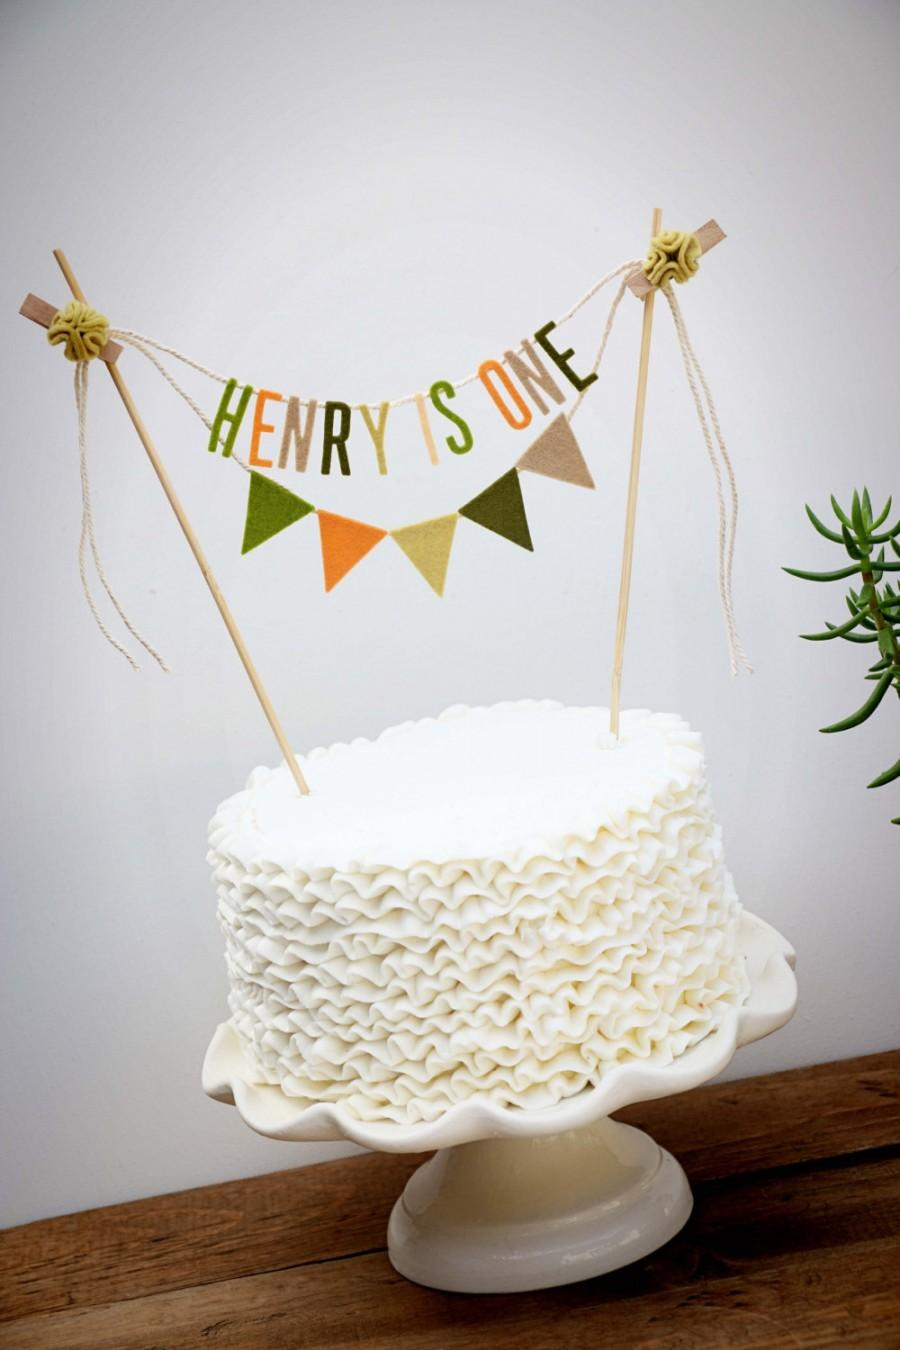 Hochzeit - Personalized Cake Banner, Personalized Cake Topper, Birthday Cake Garland, Birthday Cake Topper, Woodland Cake Garland:  Peach and Moss